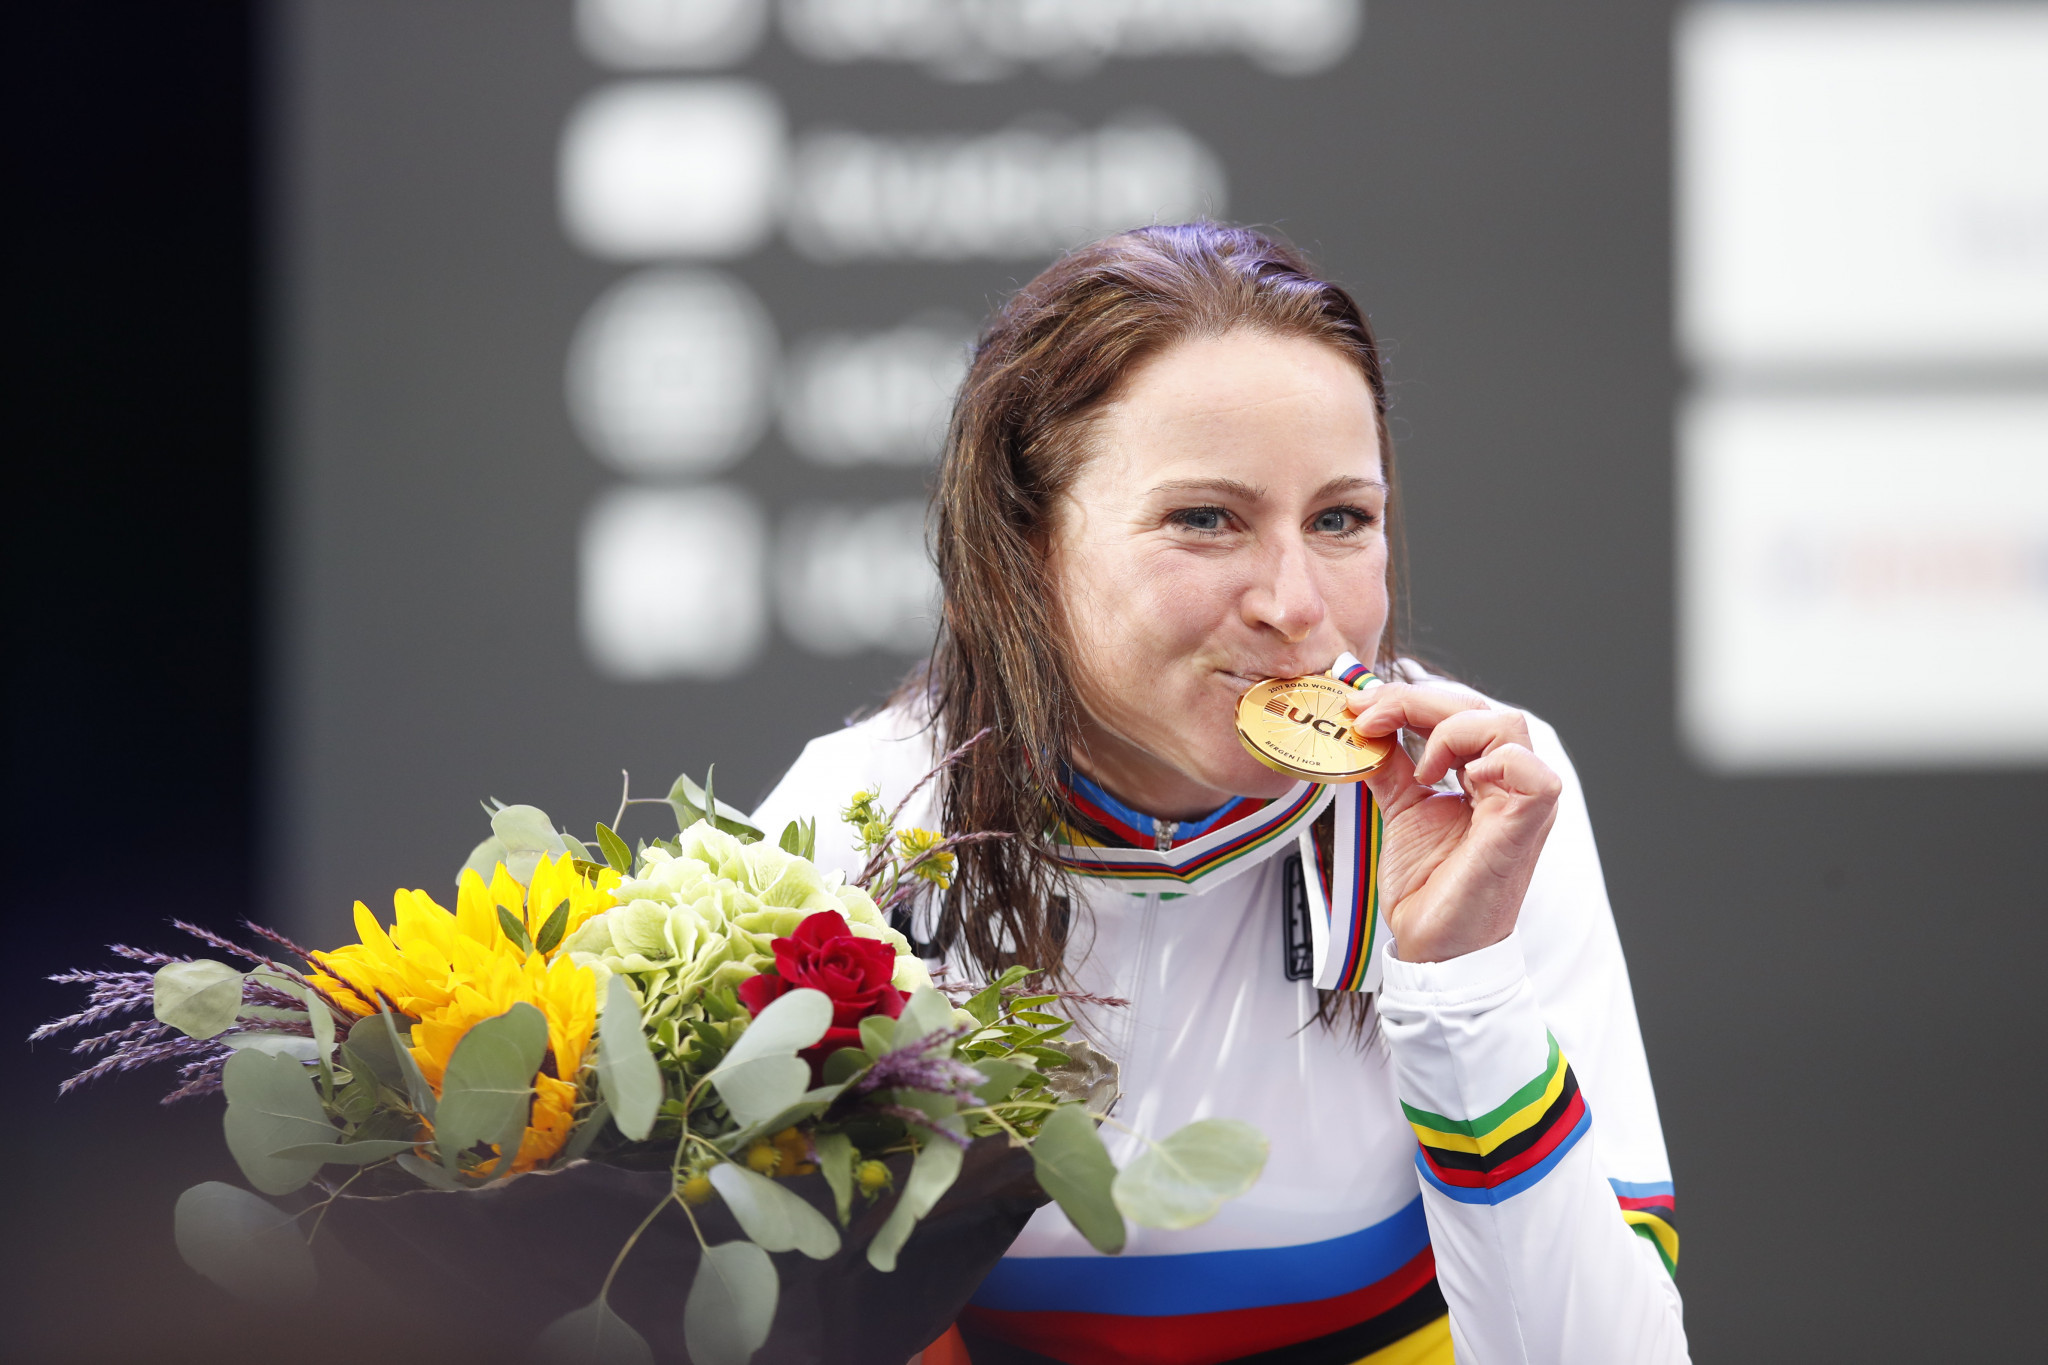 Van Vleuten triumphs as Dutch claim women's time trial one-two at Road World Championships